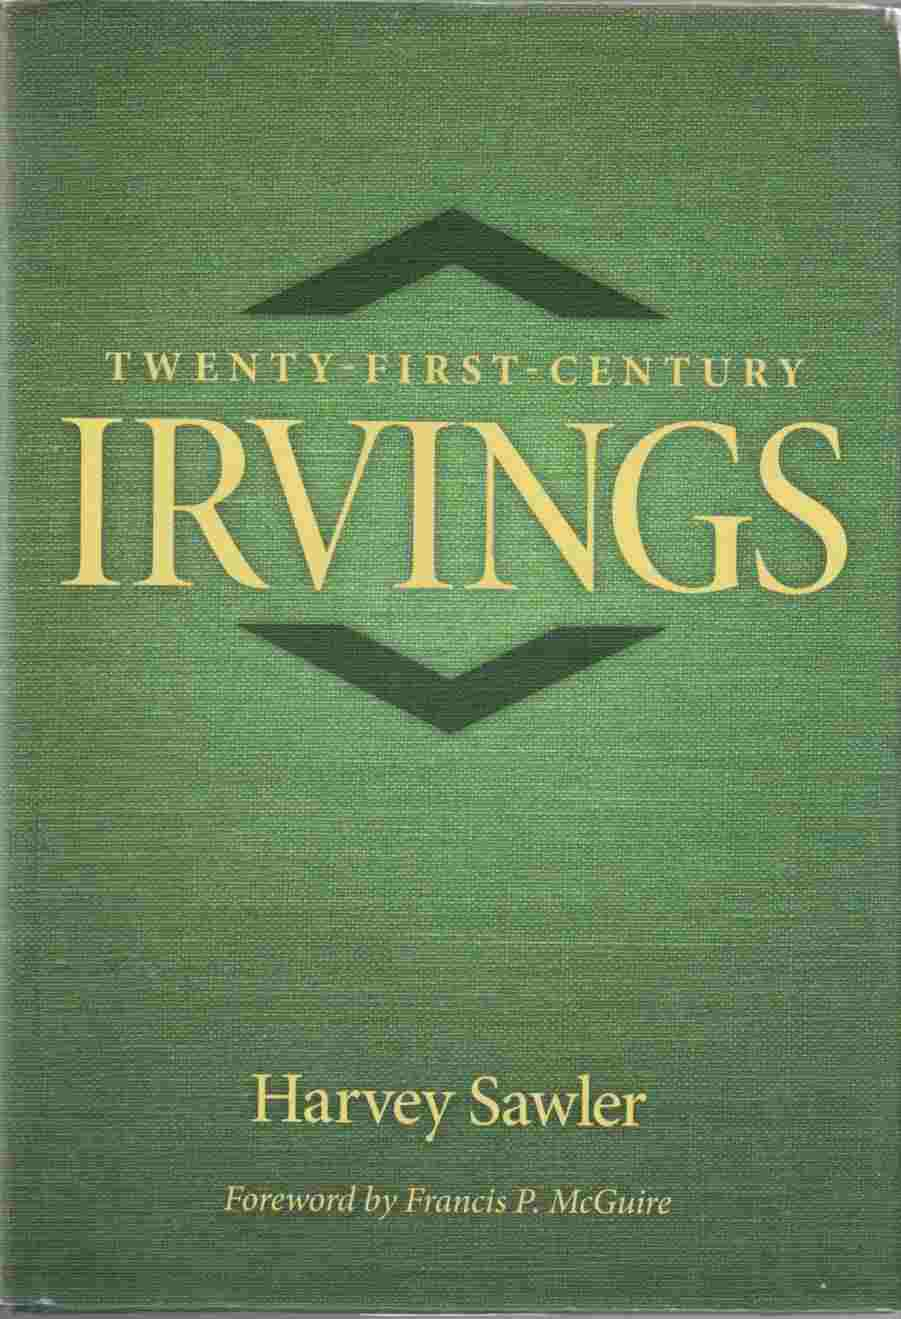 Image for Twenty-First-Century Irvings